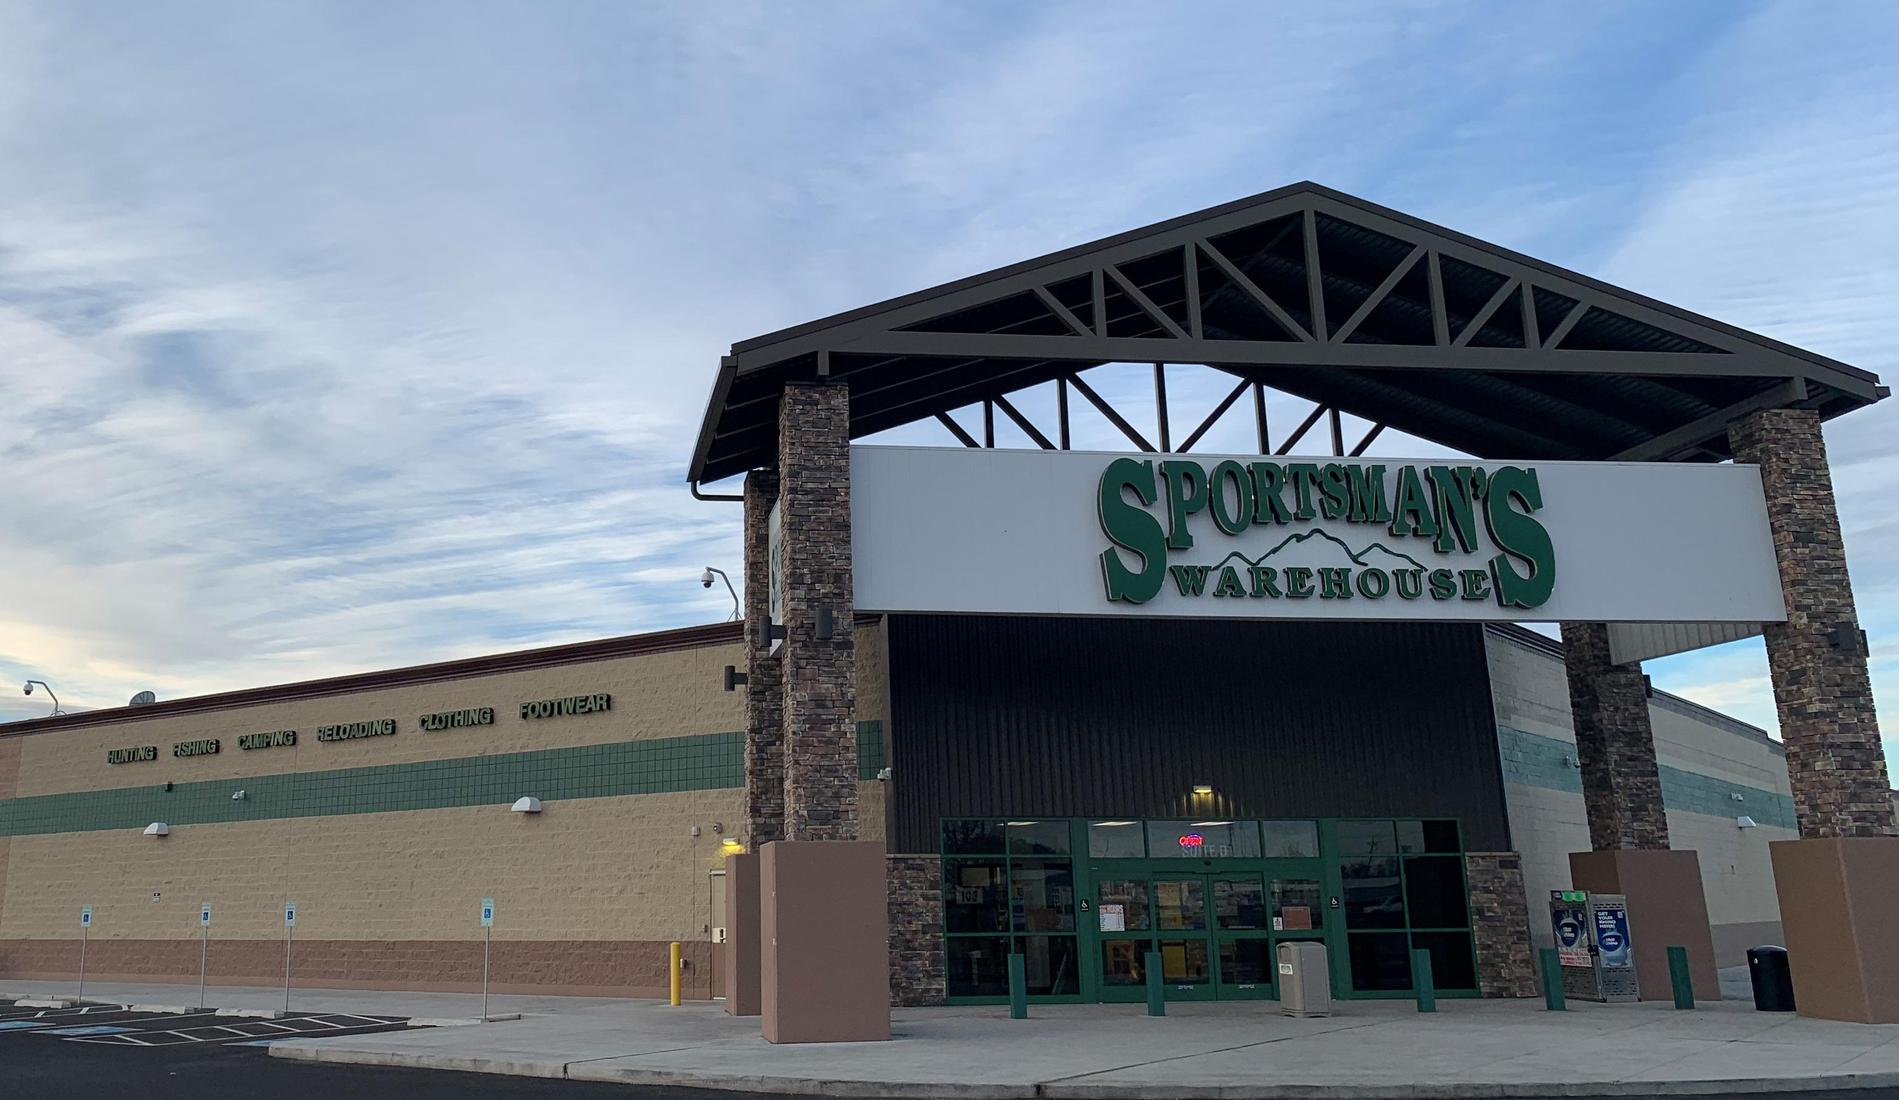 Moses Lake, WA - Outdoor Sporting Gear Store | Sportsman's